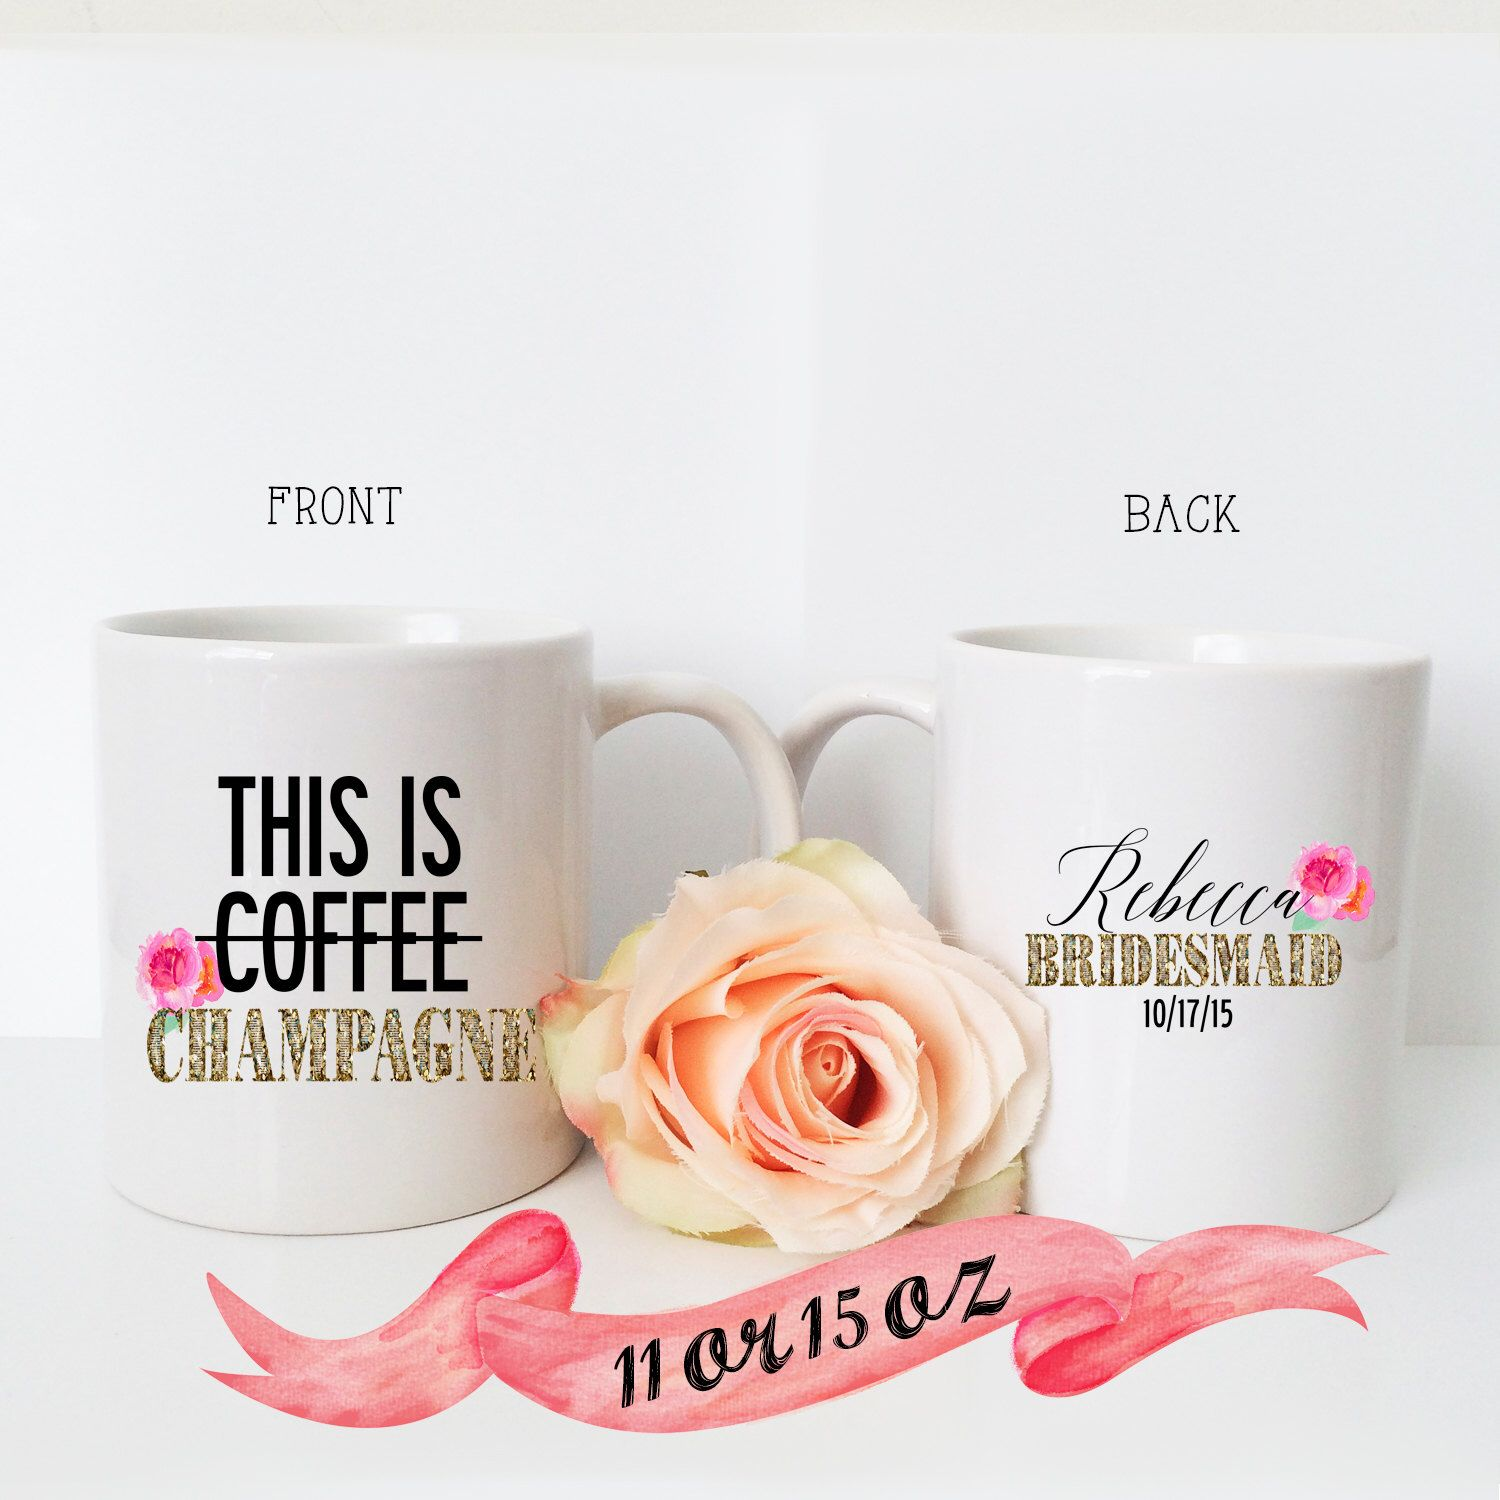 BRIDESMAID MUG Funny This is Champagne Quote for Wedding